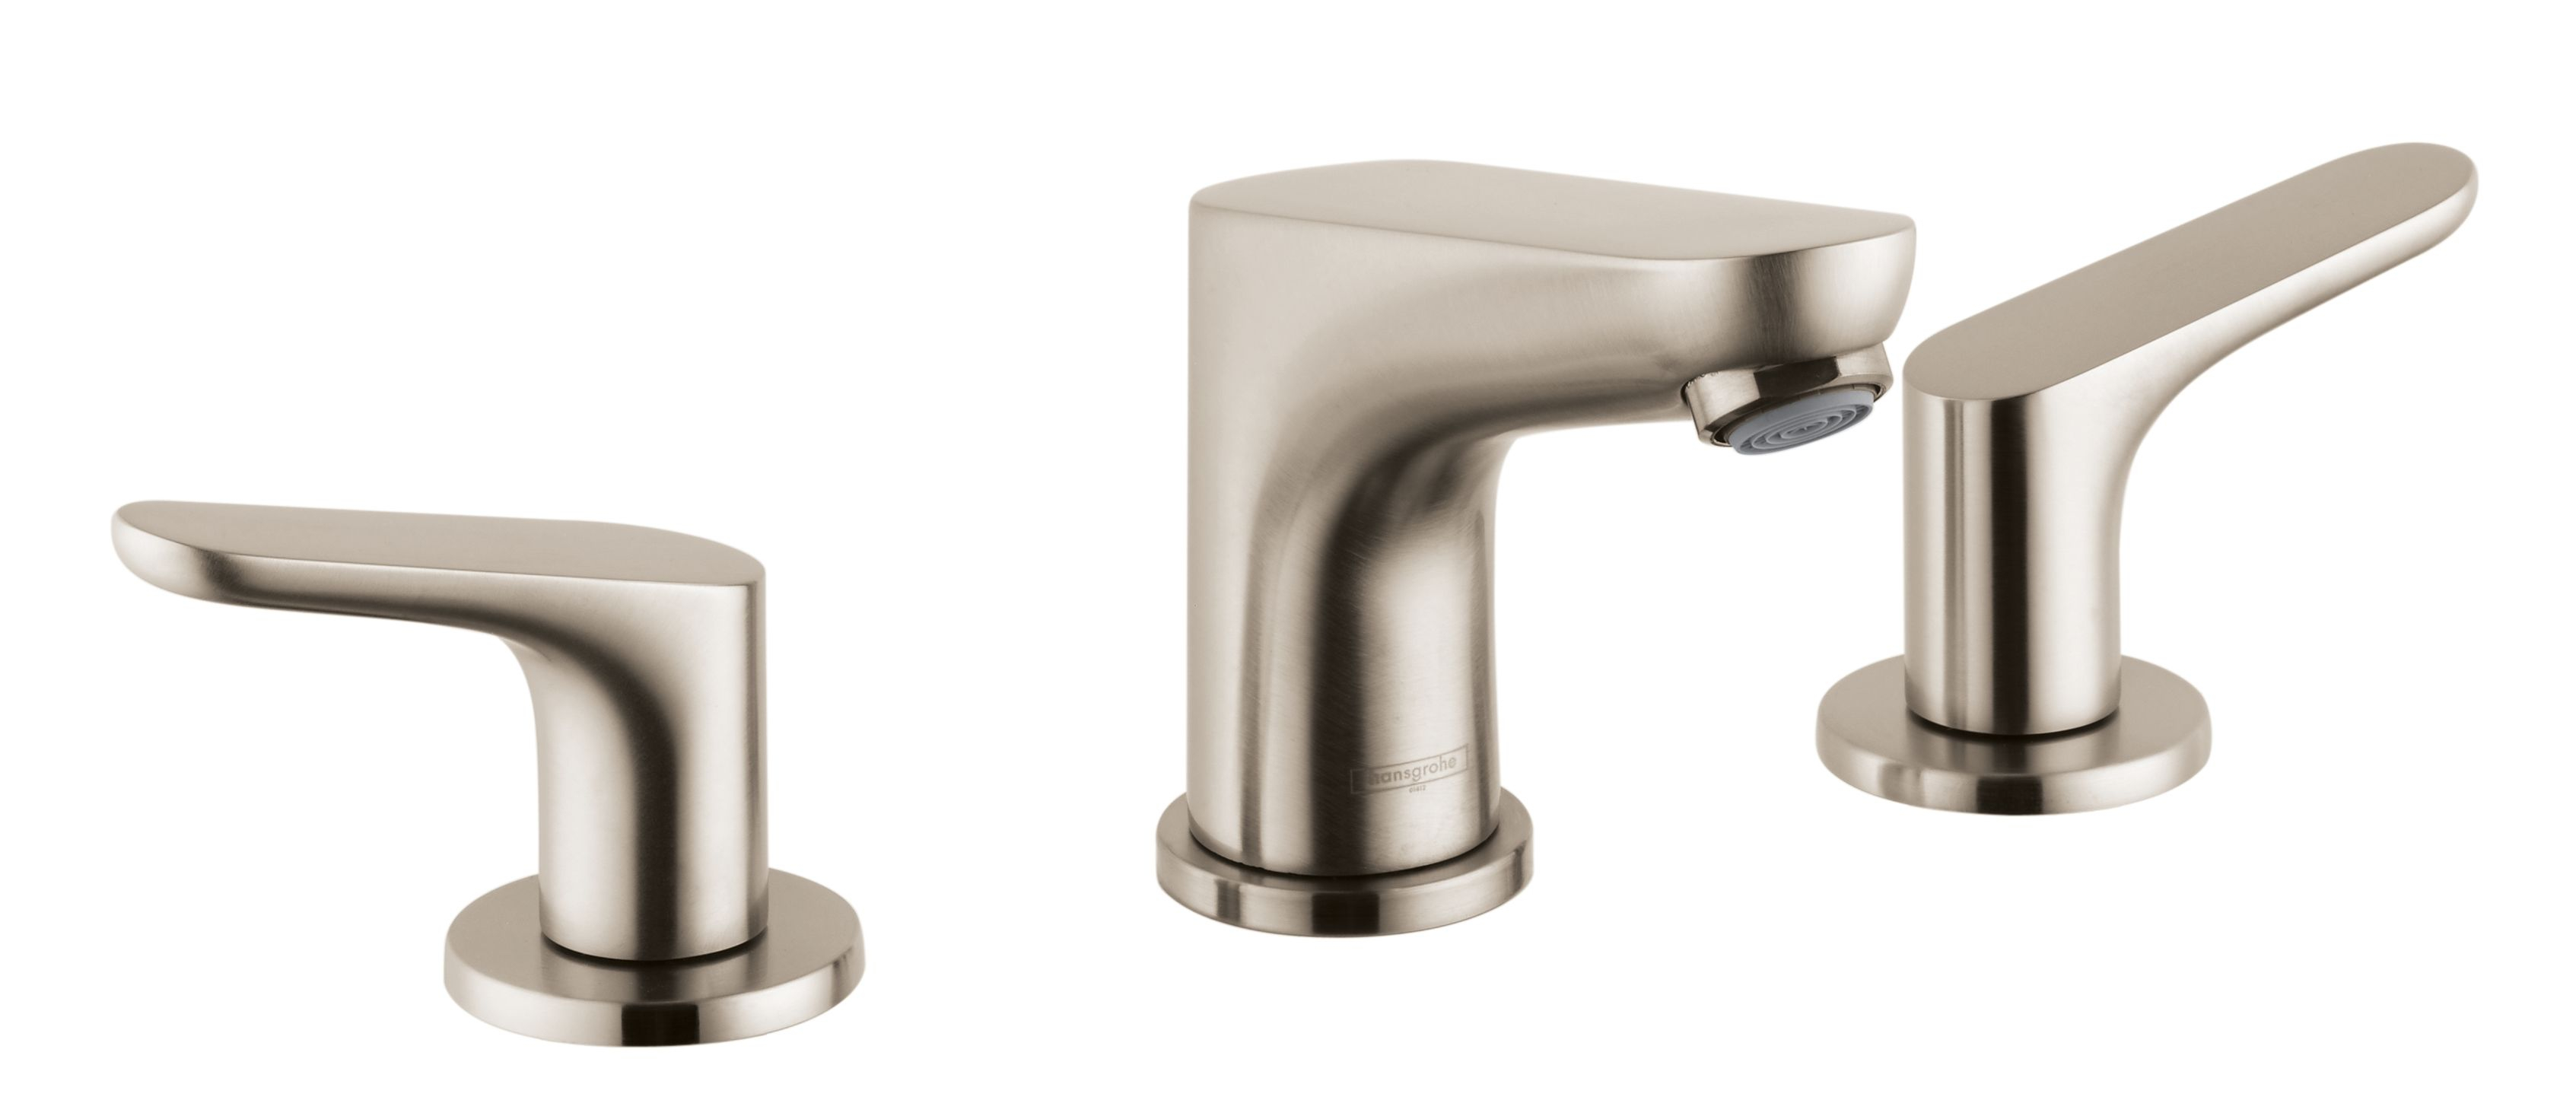 Hansgrohe 04369820 Brushed Nickel Focus 12 Gpm Widespread Bathroom within dimensions 3386 X 1467